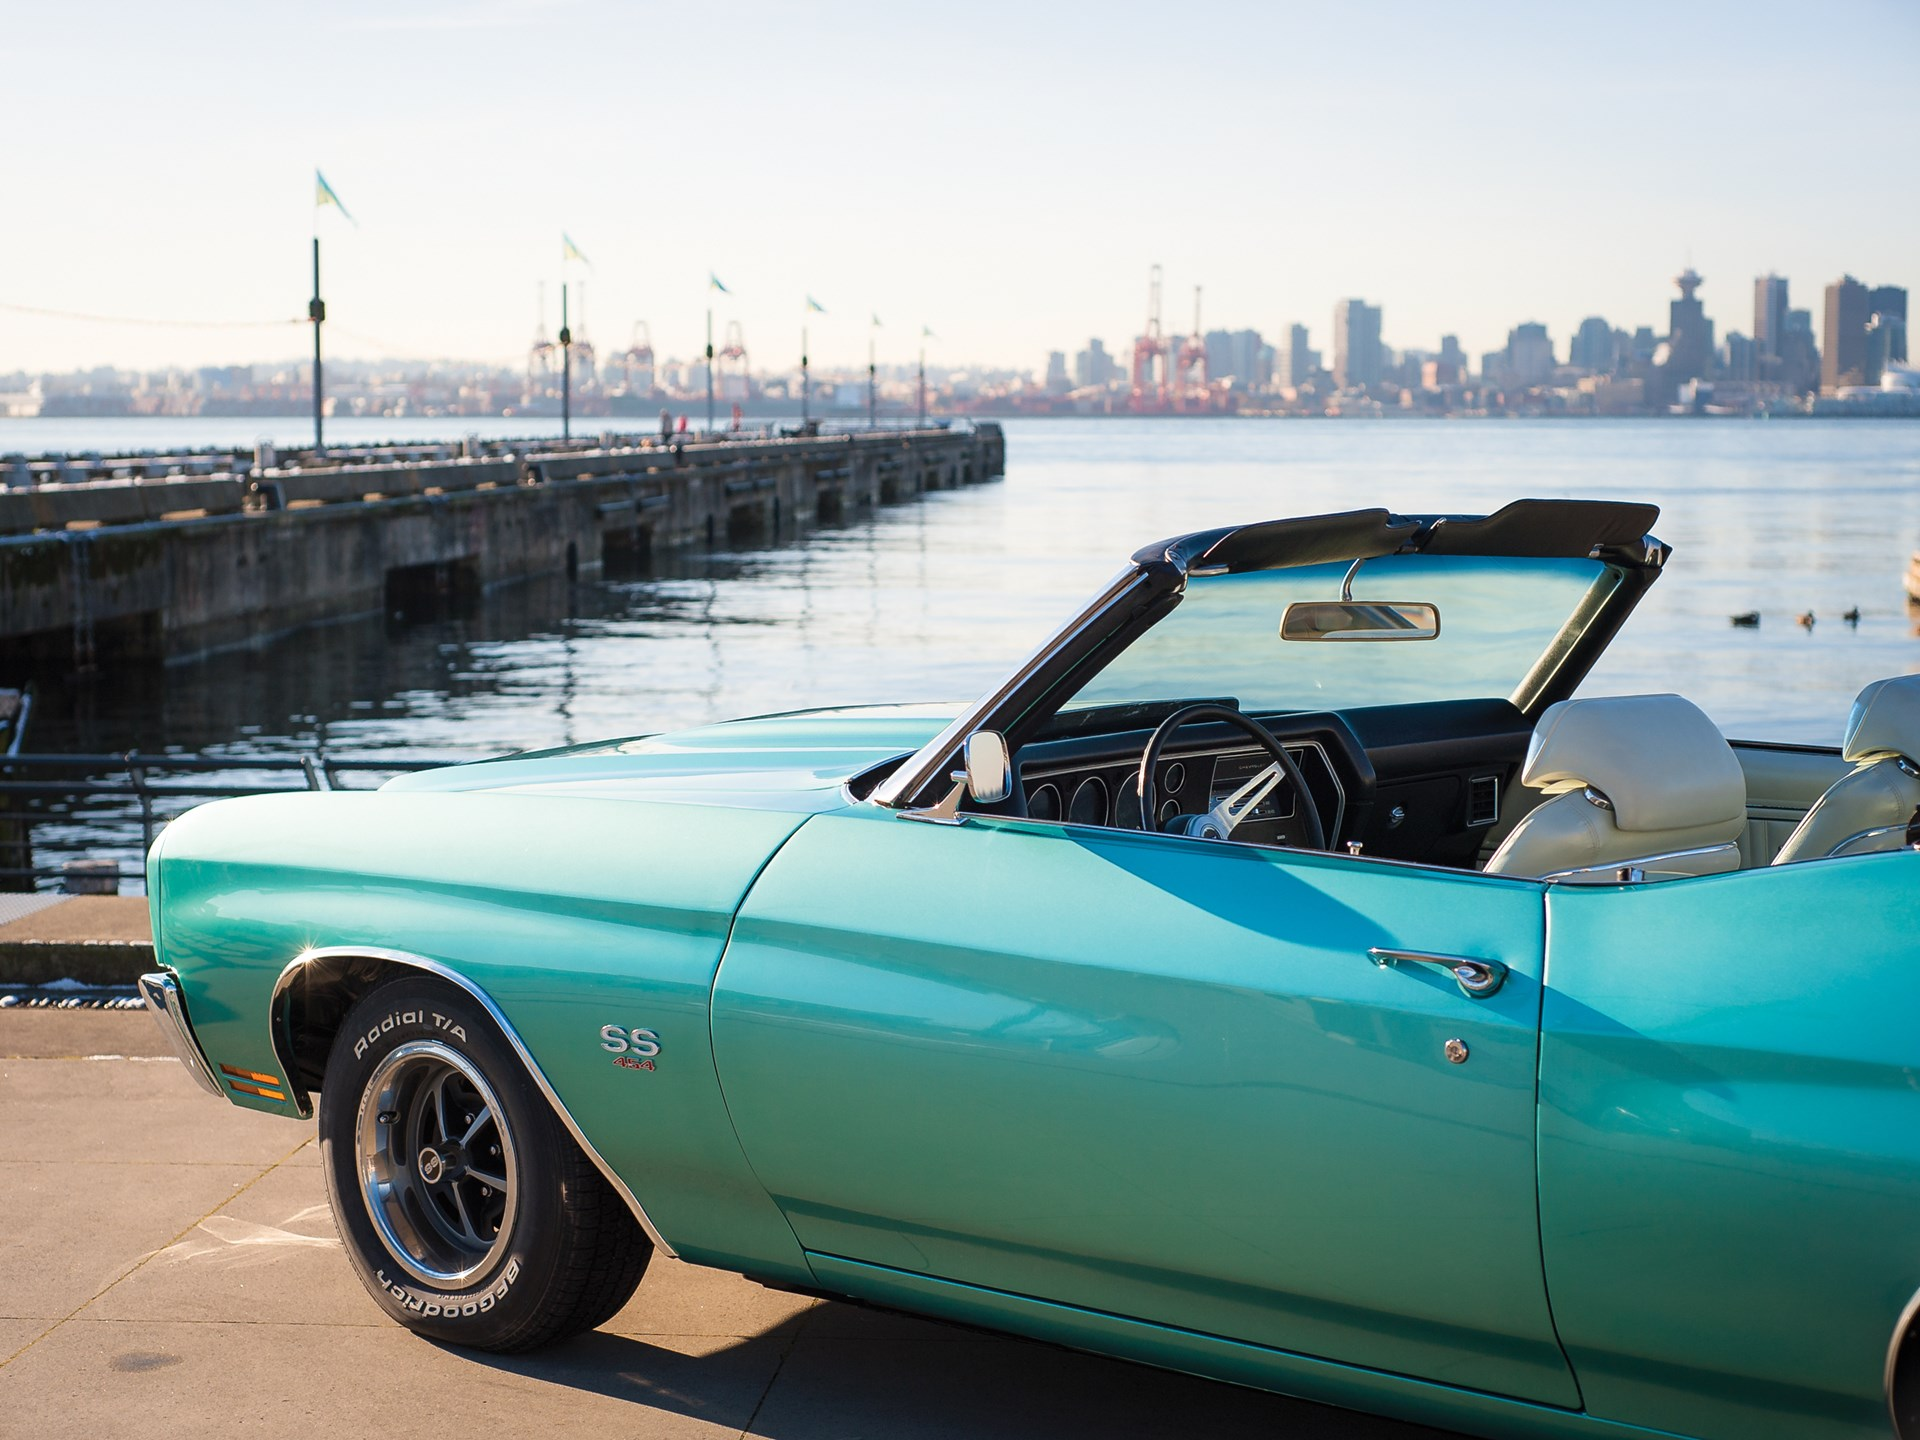 RM Sotheby's - 1970 Chevrolet Chevelle SS 454 LS6 Convertible